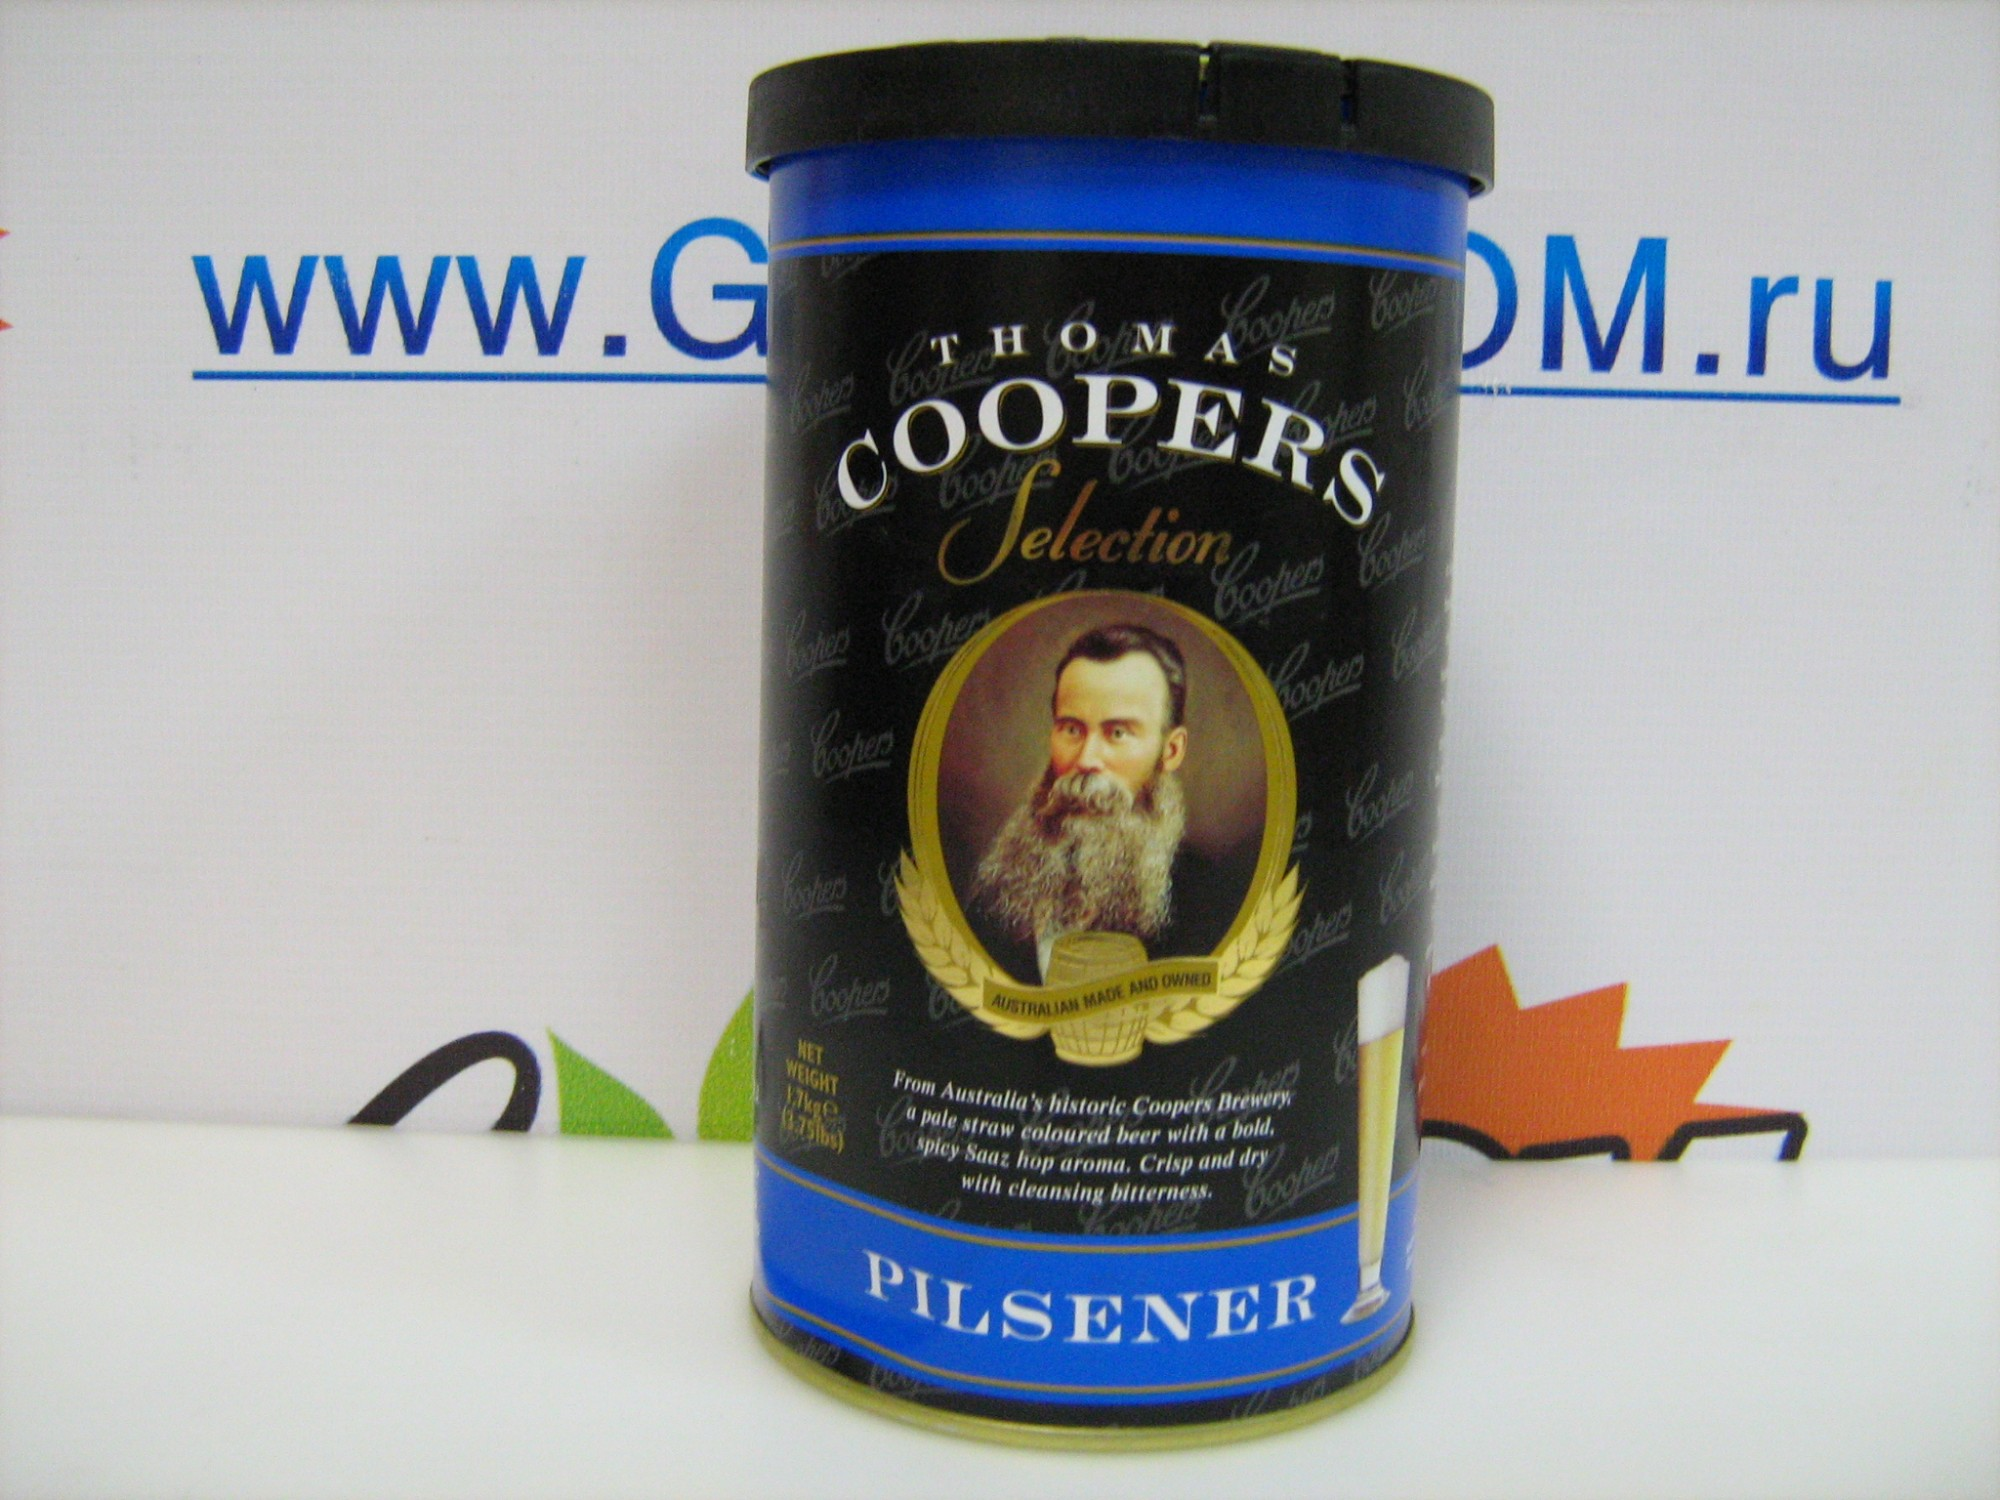 Thomas Coopers Pilsener